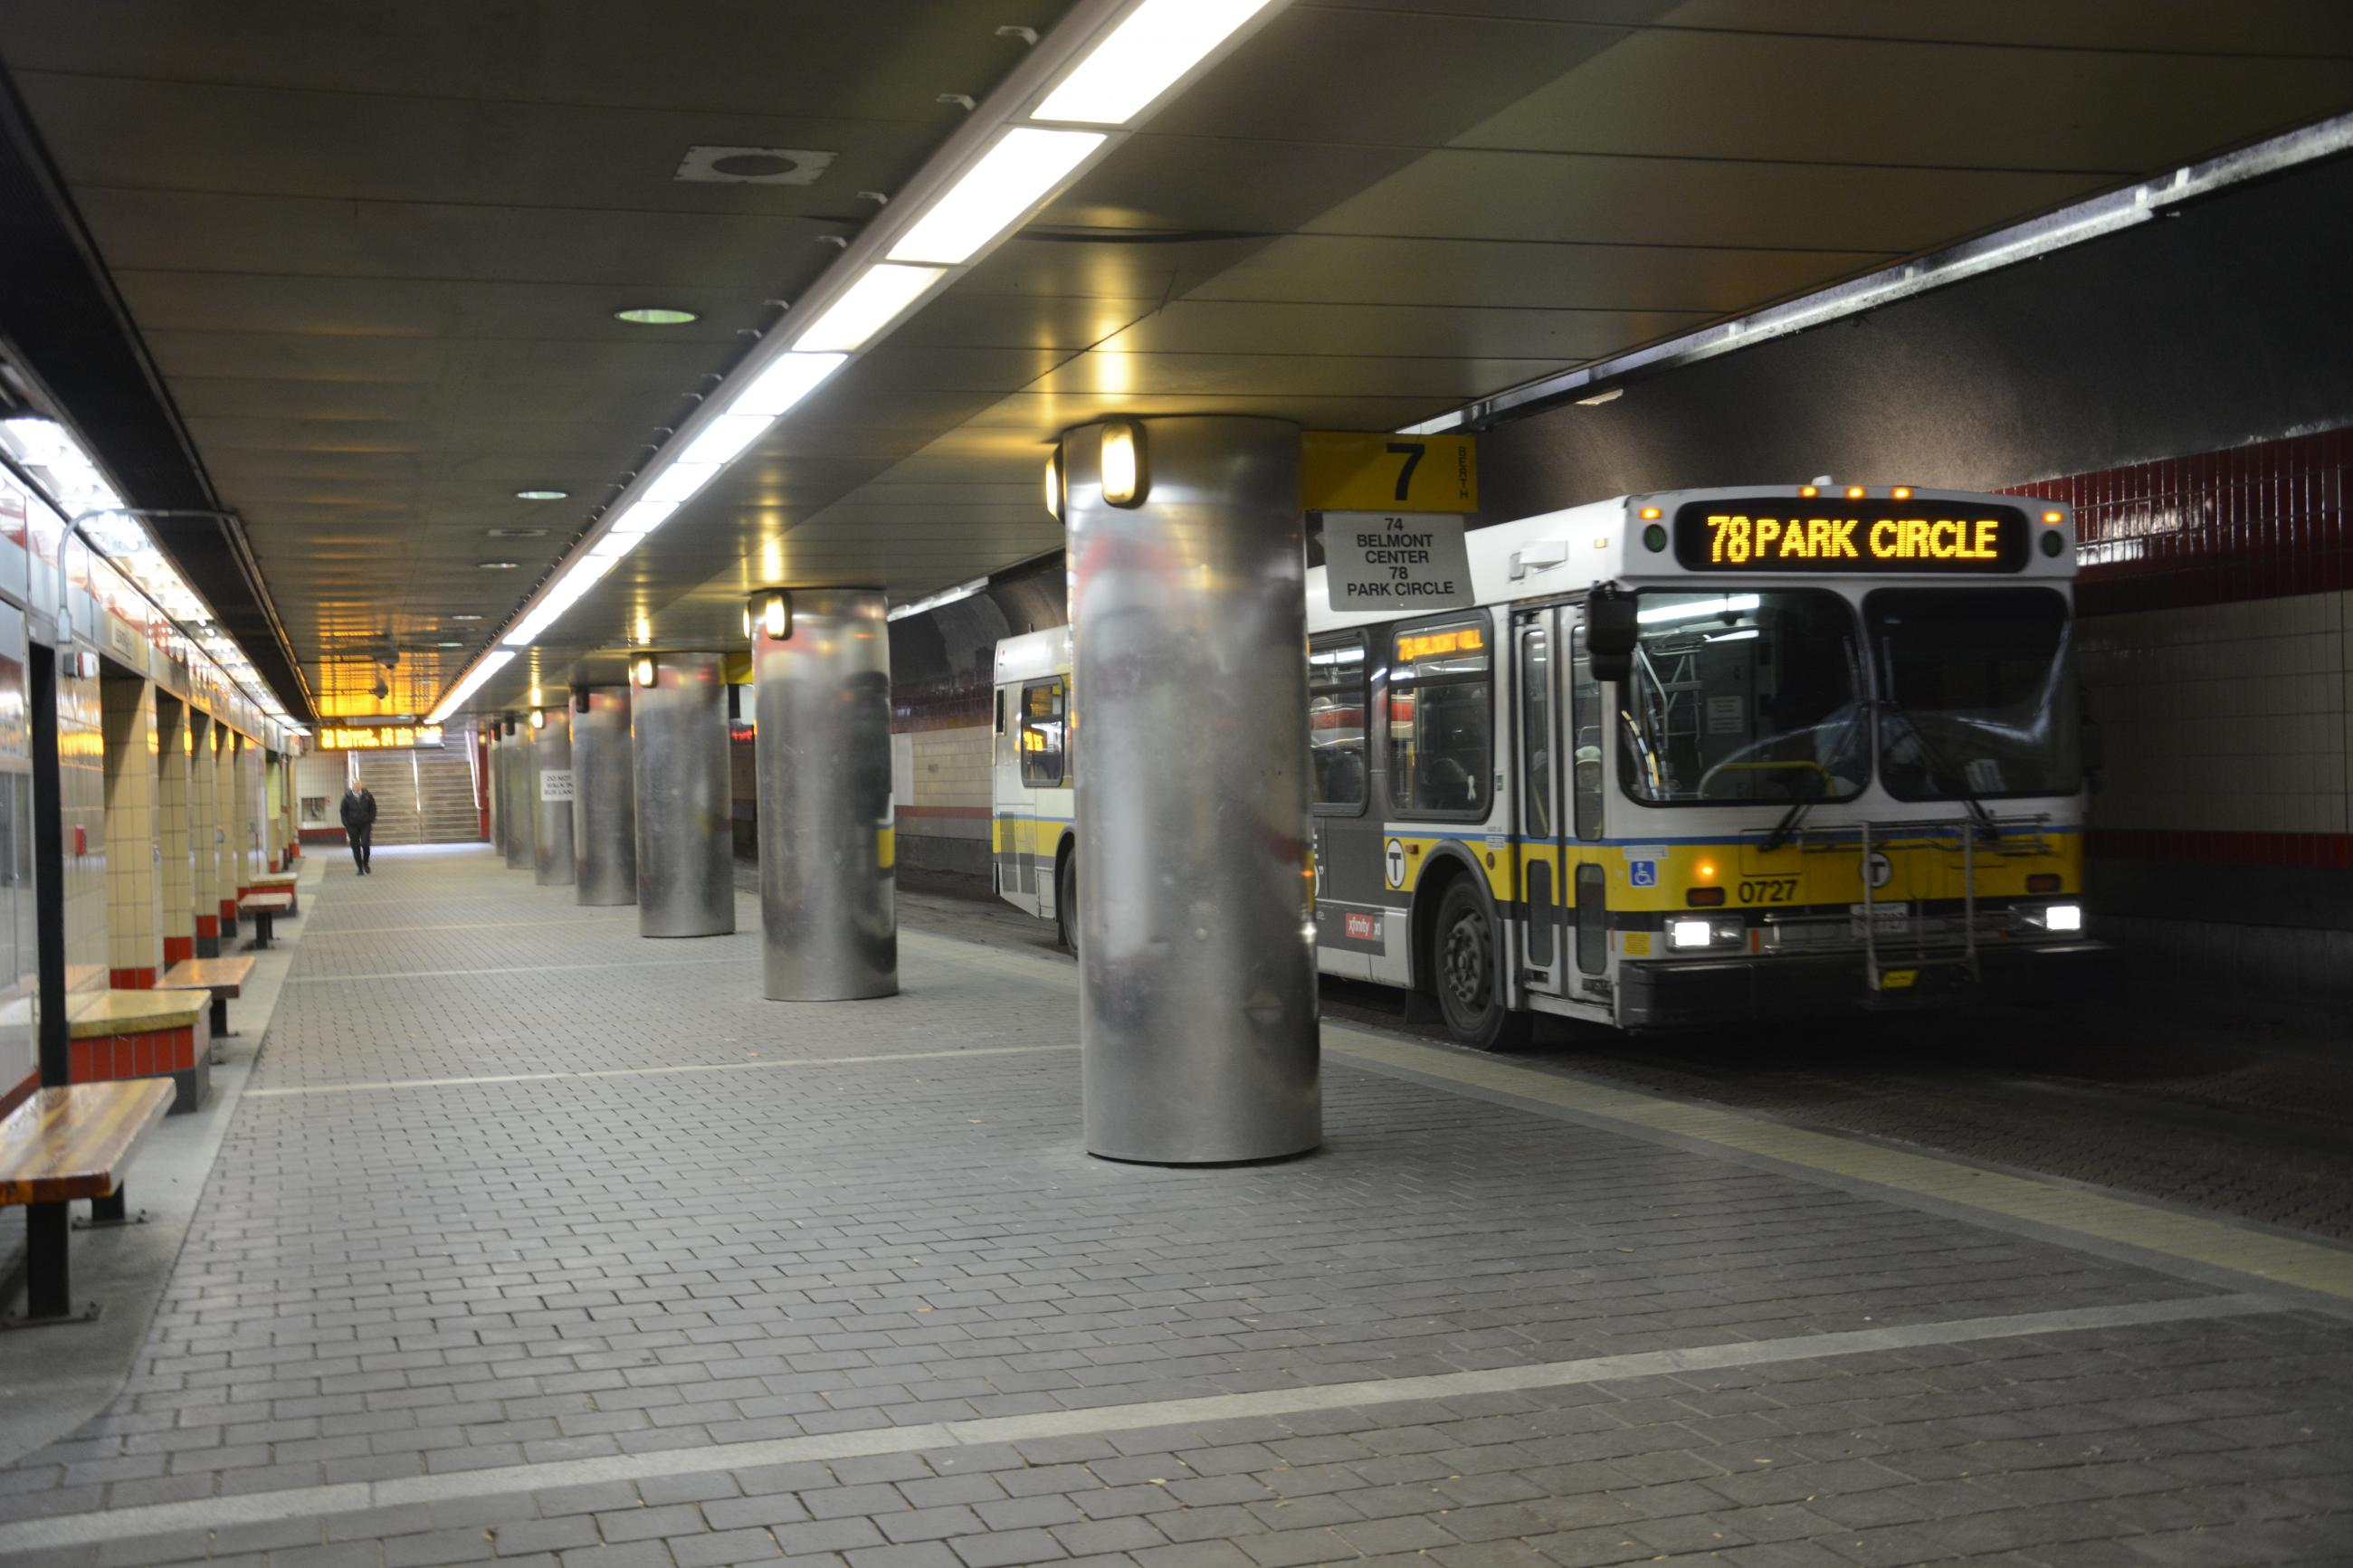 Route 78 bus pulls into the upper busway at Harvard Station